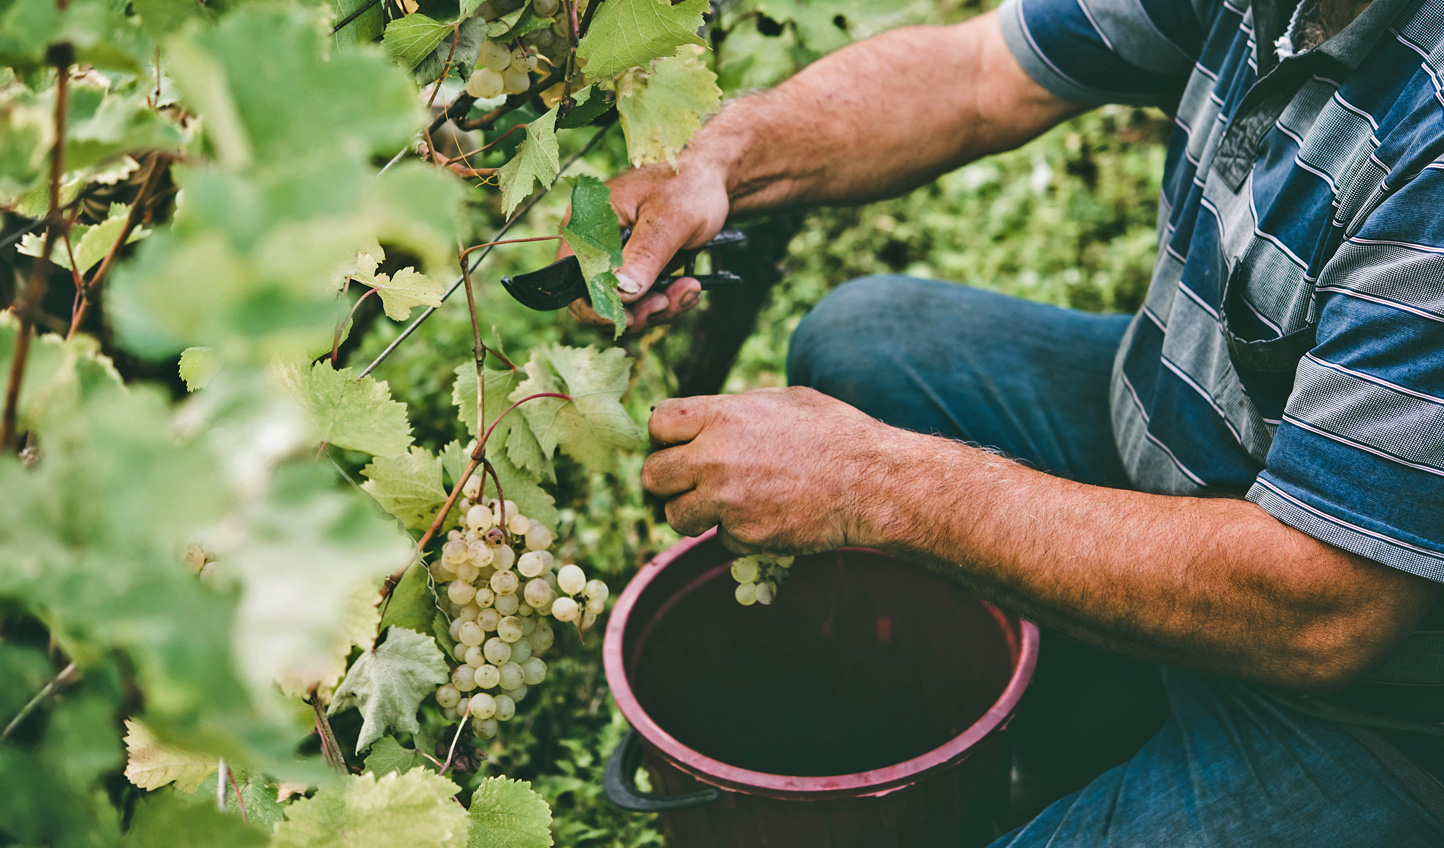 Witness traditional winemaking in the Alazani Valley